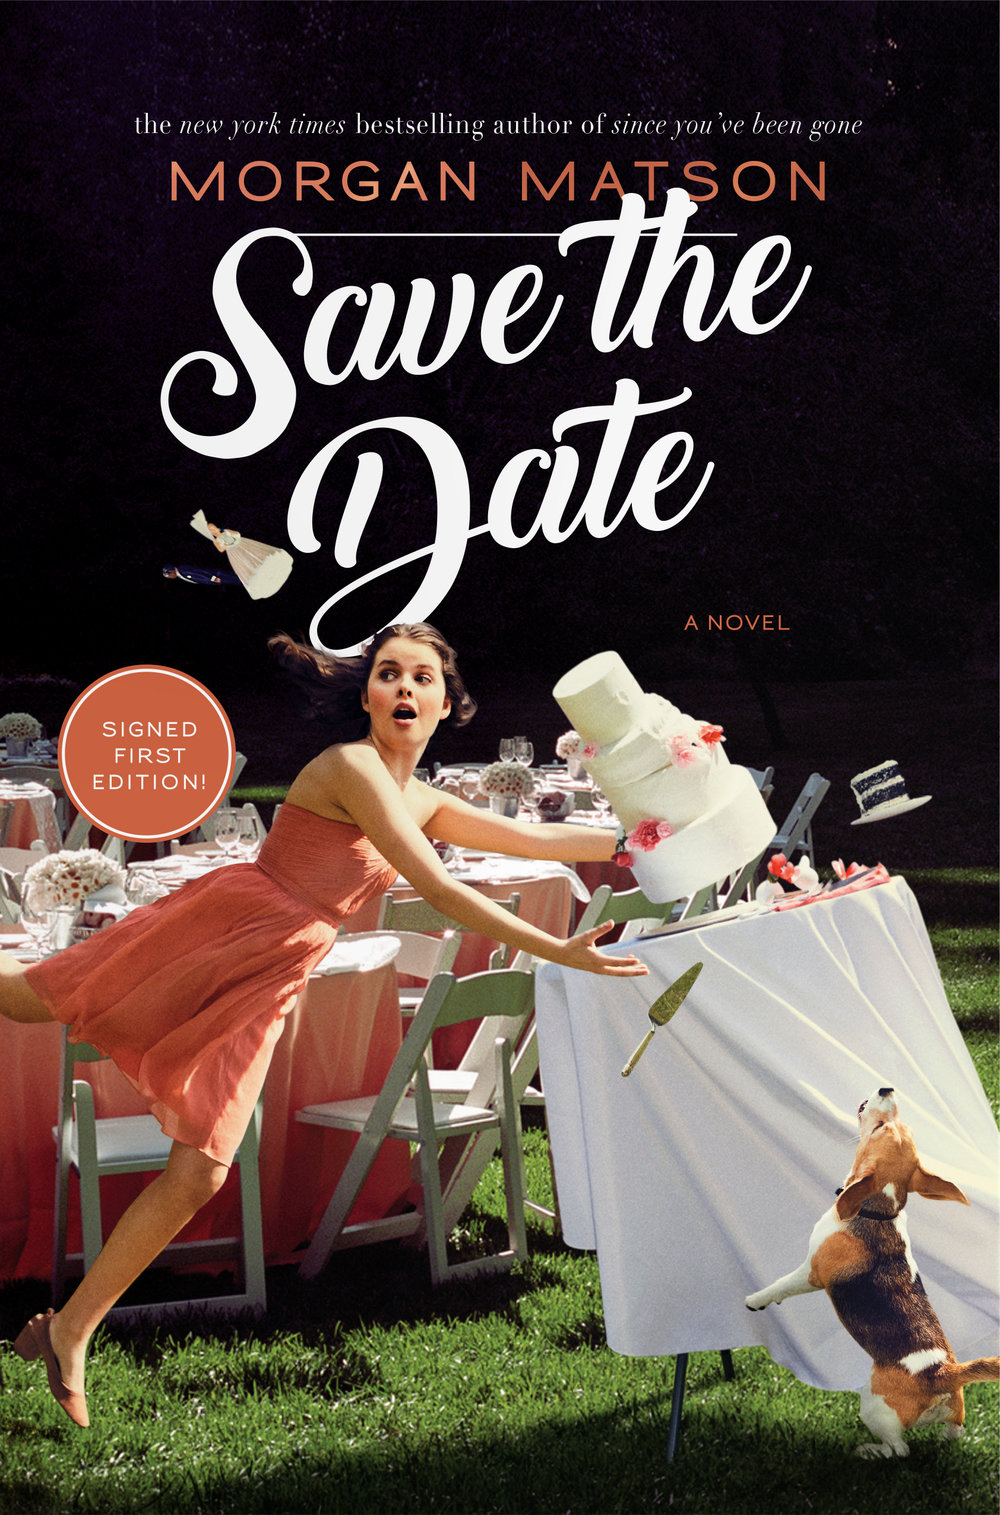 morgan-matson-save-the-date.jpg